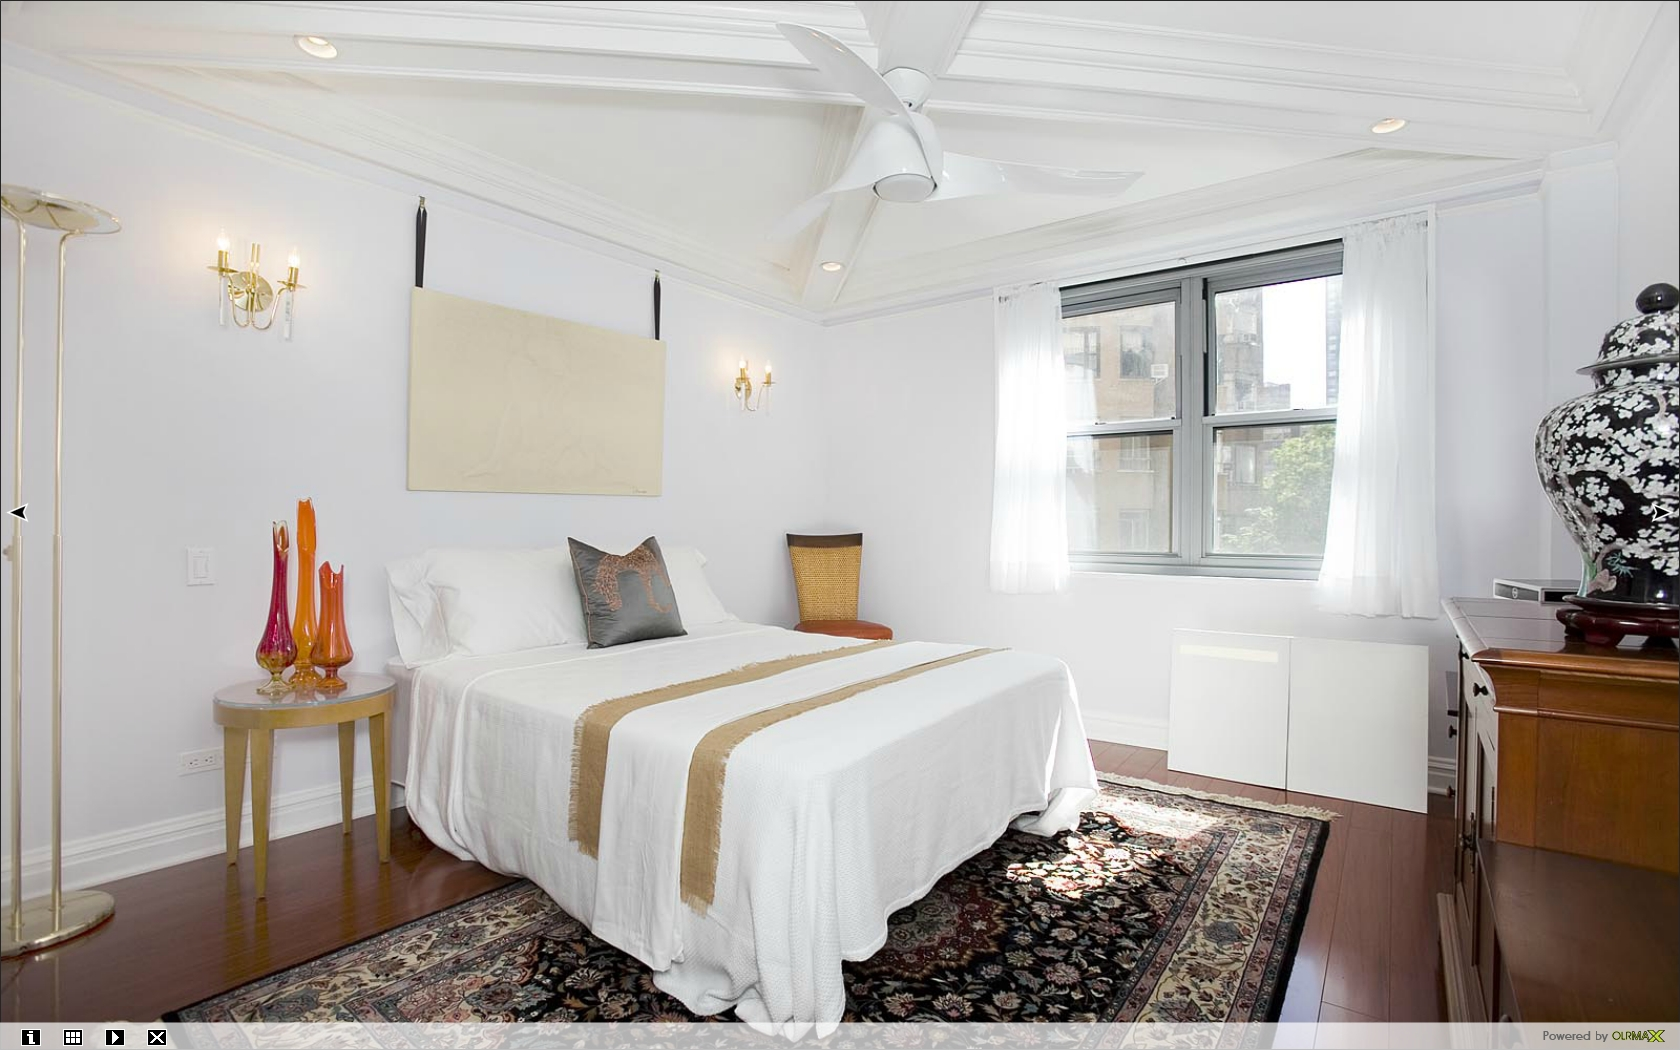 This NYC one bedroom apartment, simply apportioned designed to maximize space allocations and modernized for today's living, includes a walk-in closet.